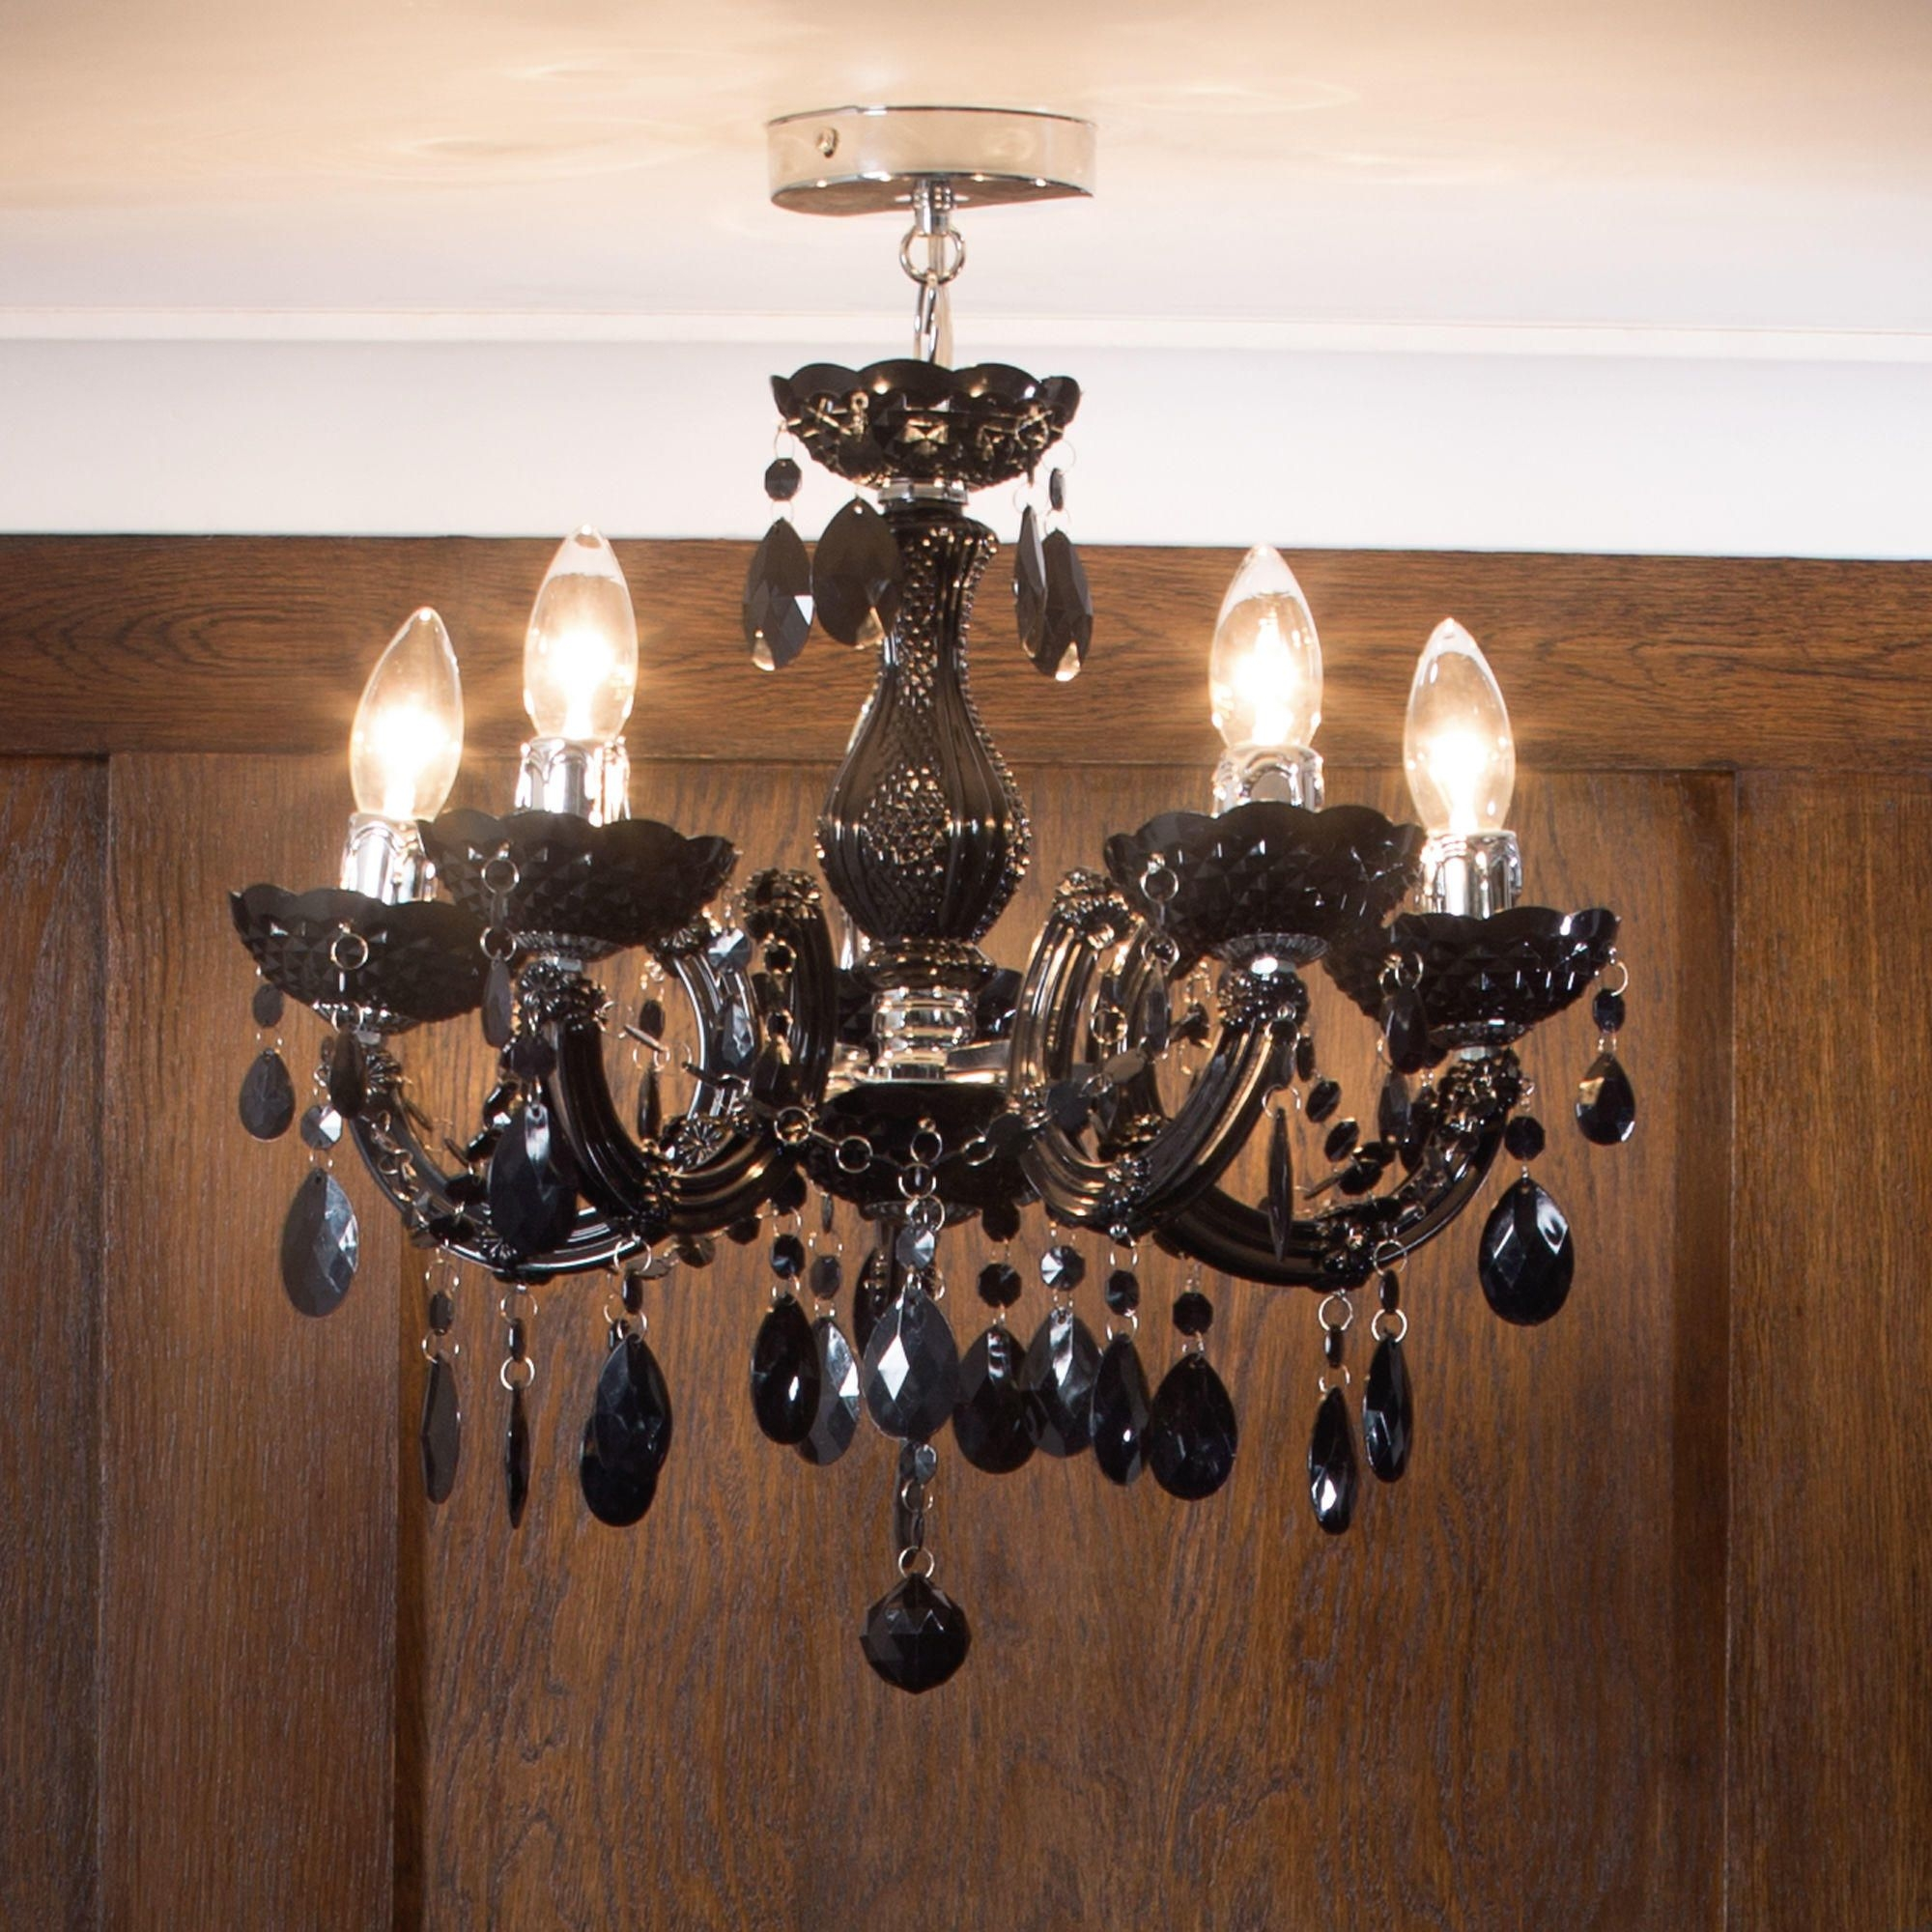 Chandeliers For Low Ceilings Litecraft With Regard To Chandeliers For Low Ceilings (#3 of 12)